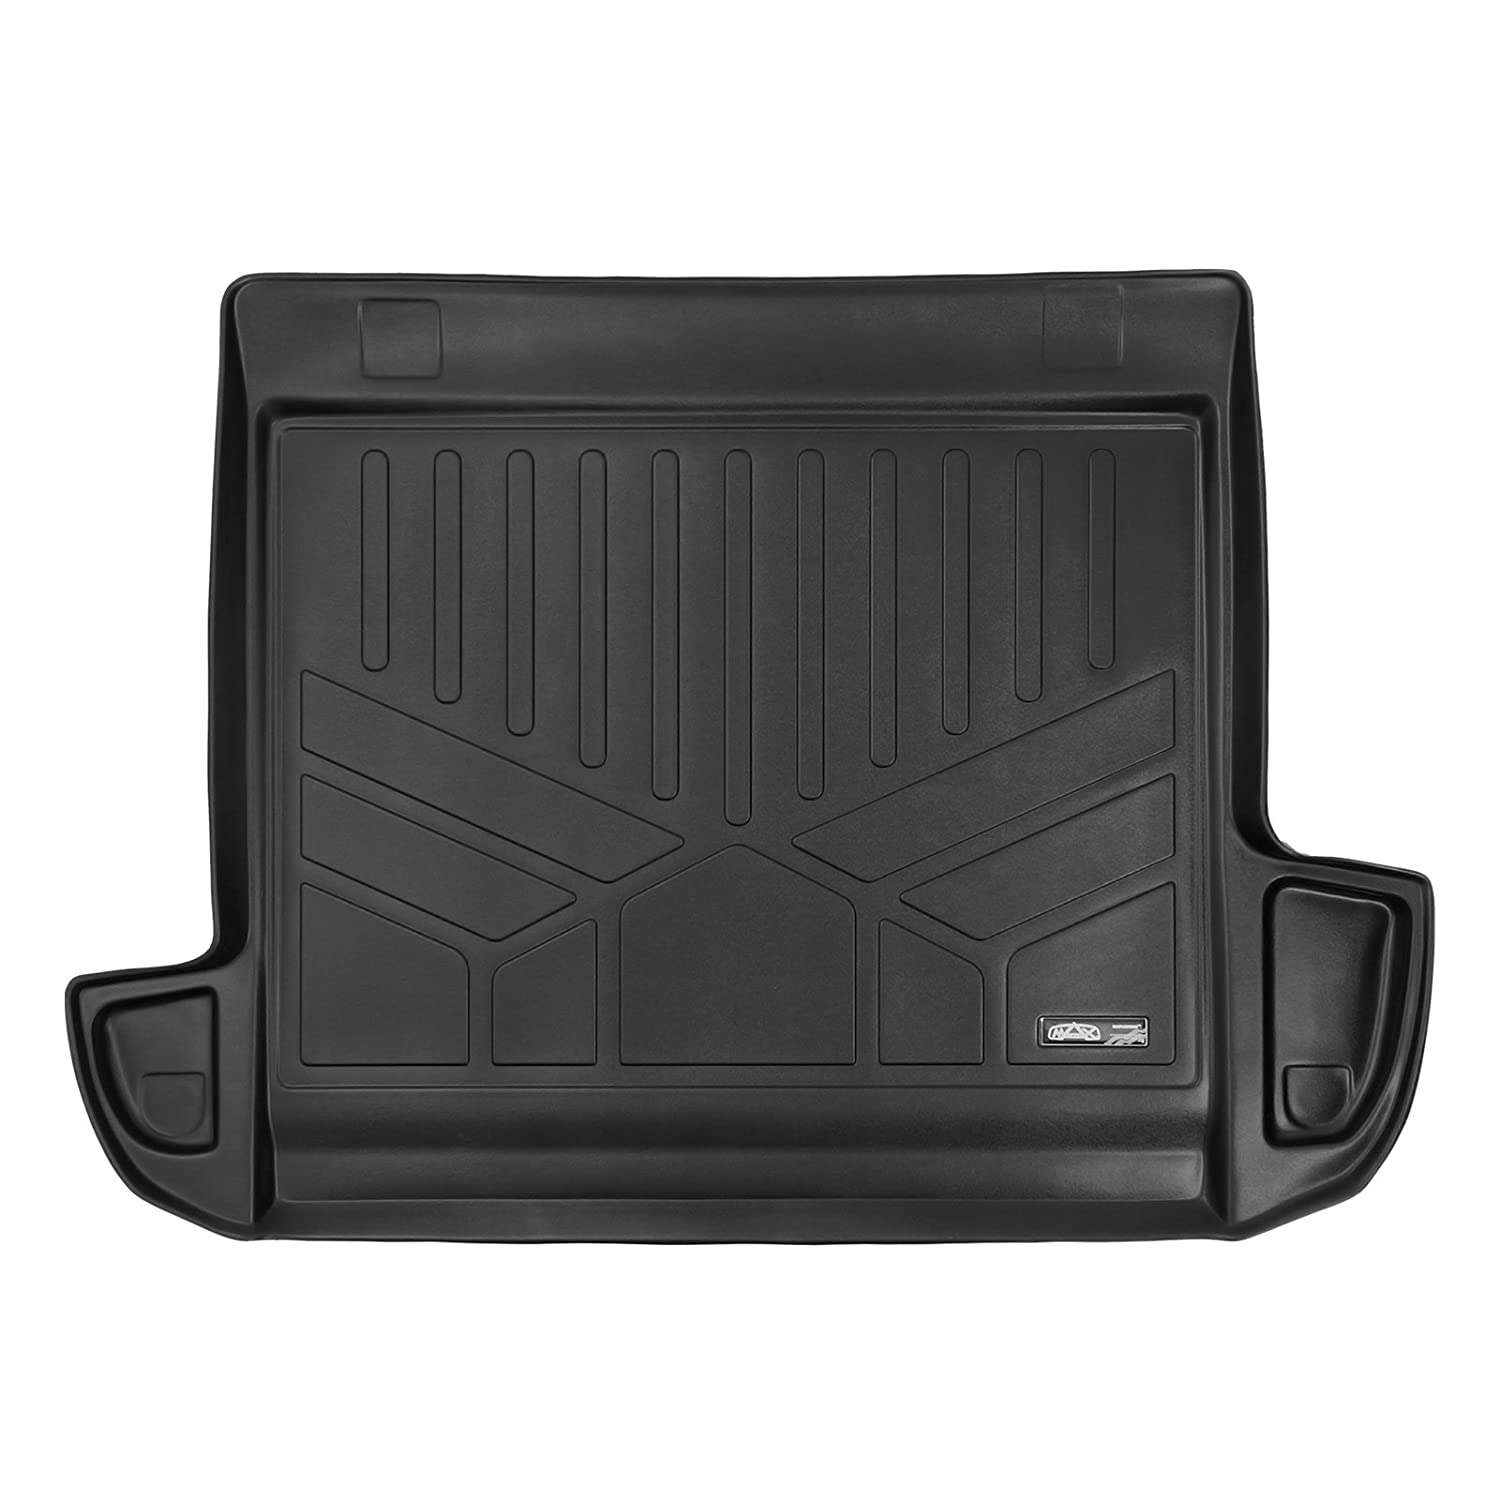 MAXLINER D0208 Tray Cargo Liner for Toyota 4Runner 5 Passenger, 2010-2016 Behind 2nd Row, Black